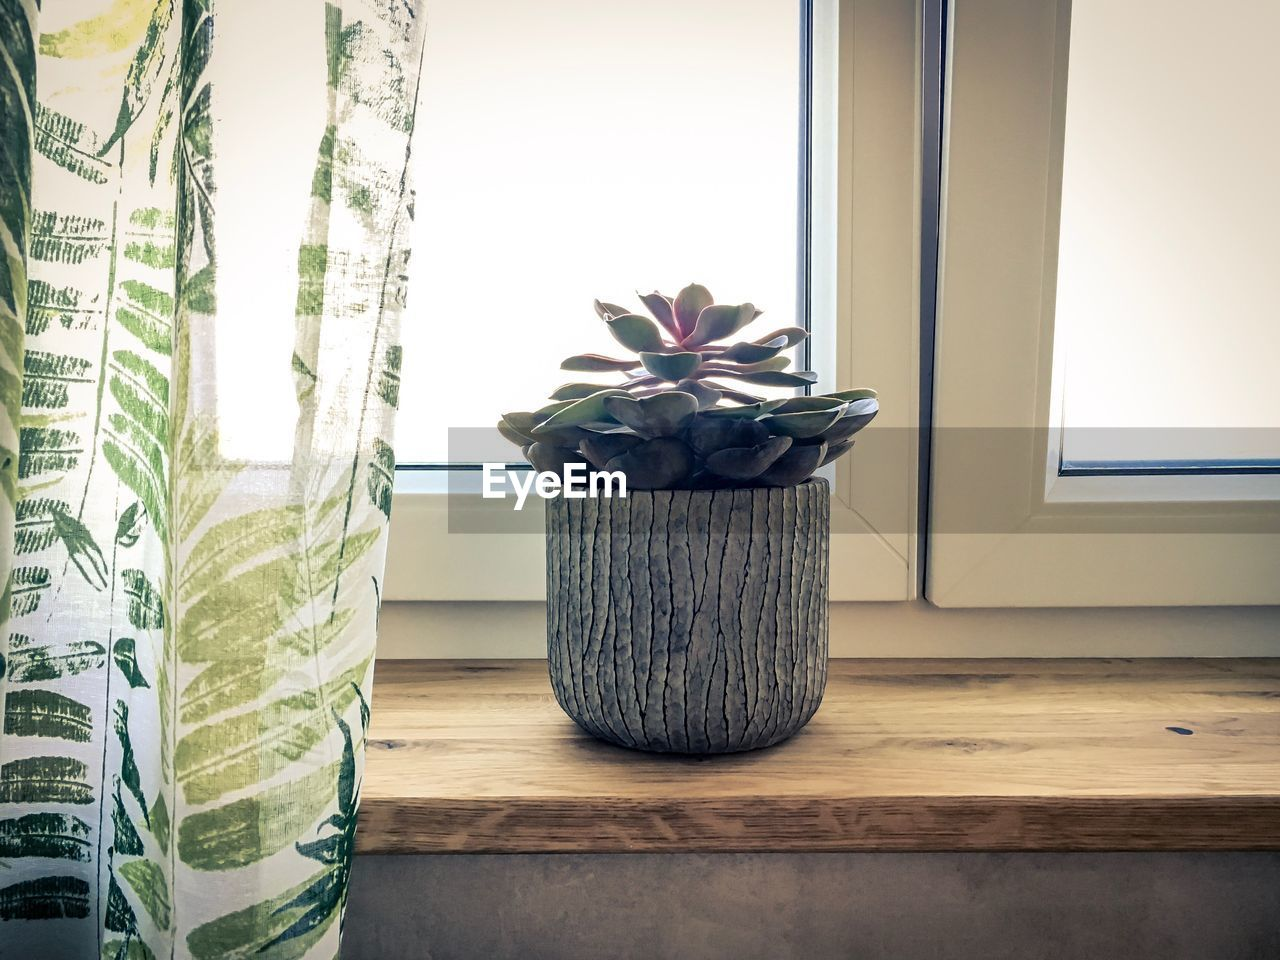 indoors, plant, home interior, potted plant, window, no people, growth, day, curtain, nature, glass - material, window sill, transparent, decoration, close-up, table, flowering plant, flower, houseplant